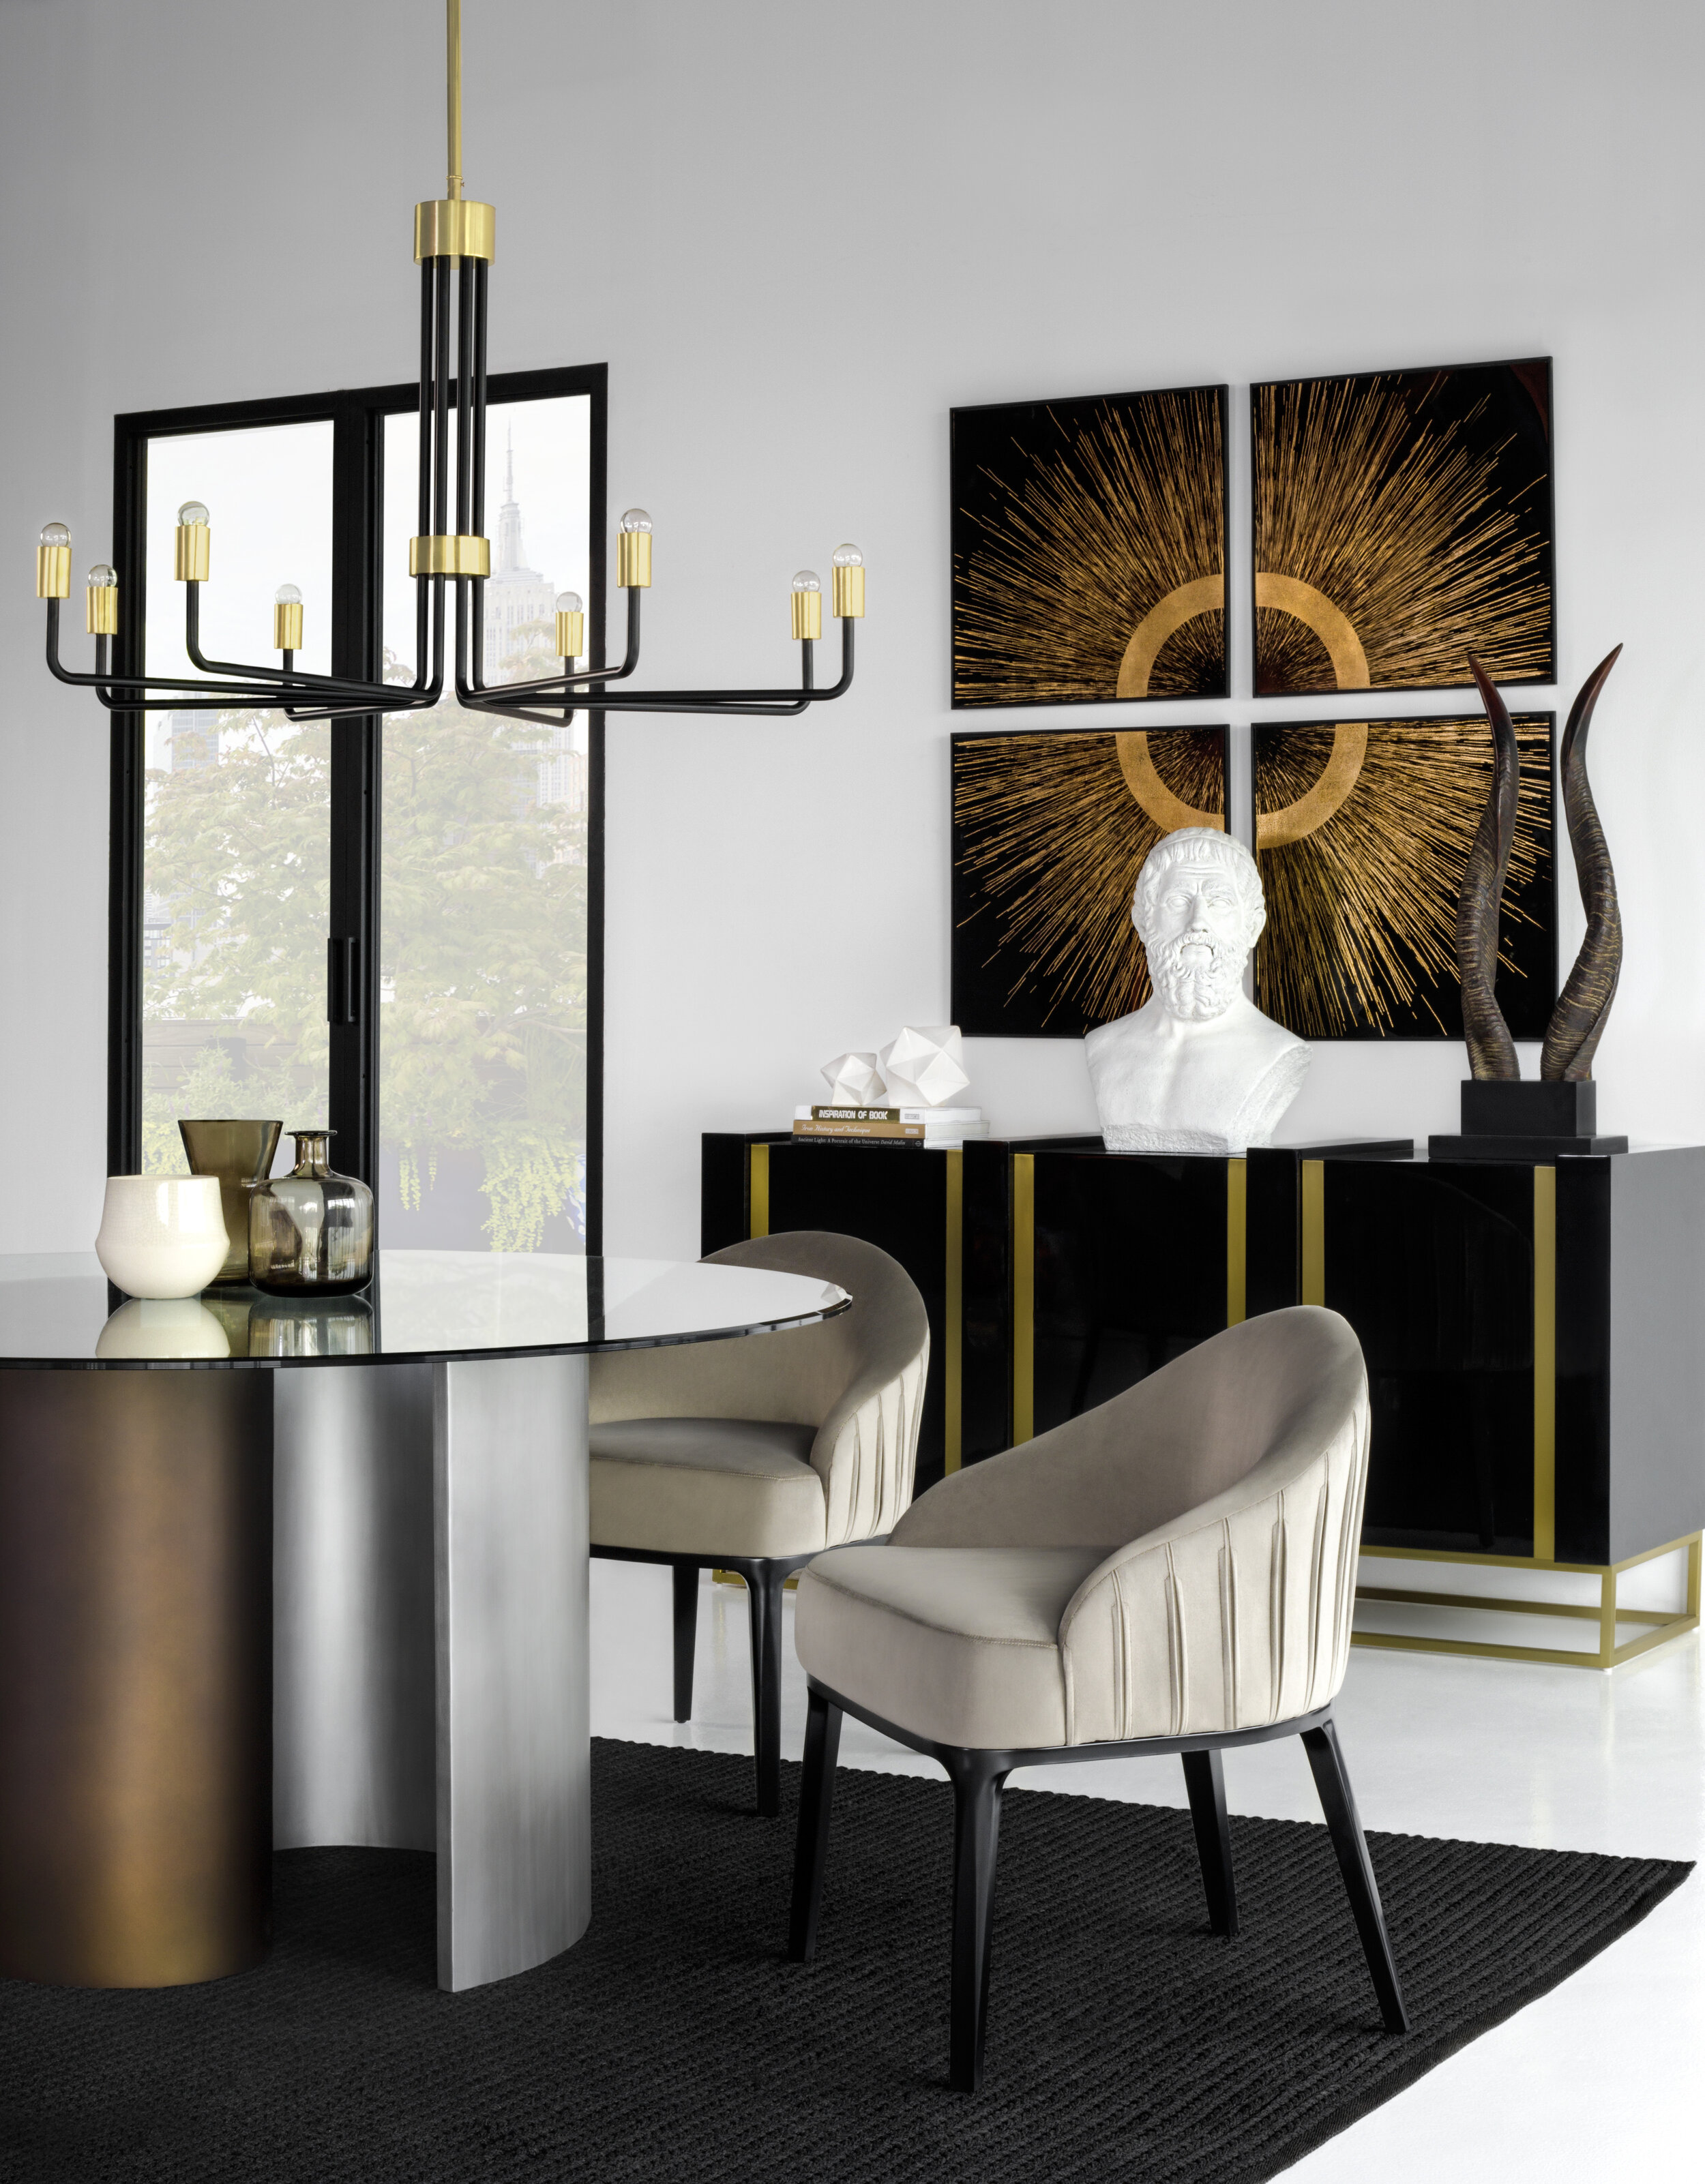 The_69_DIning_Room_by_Andrew_Martin.jpg